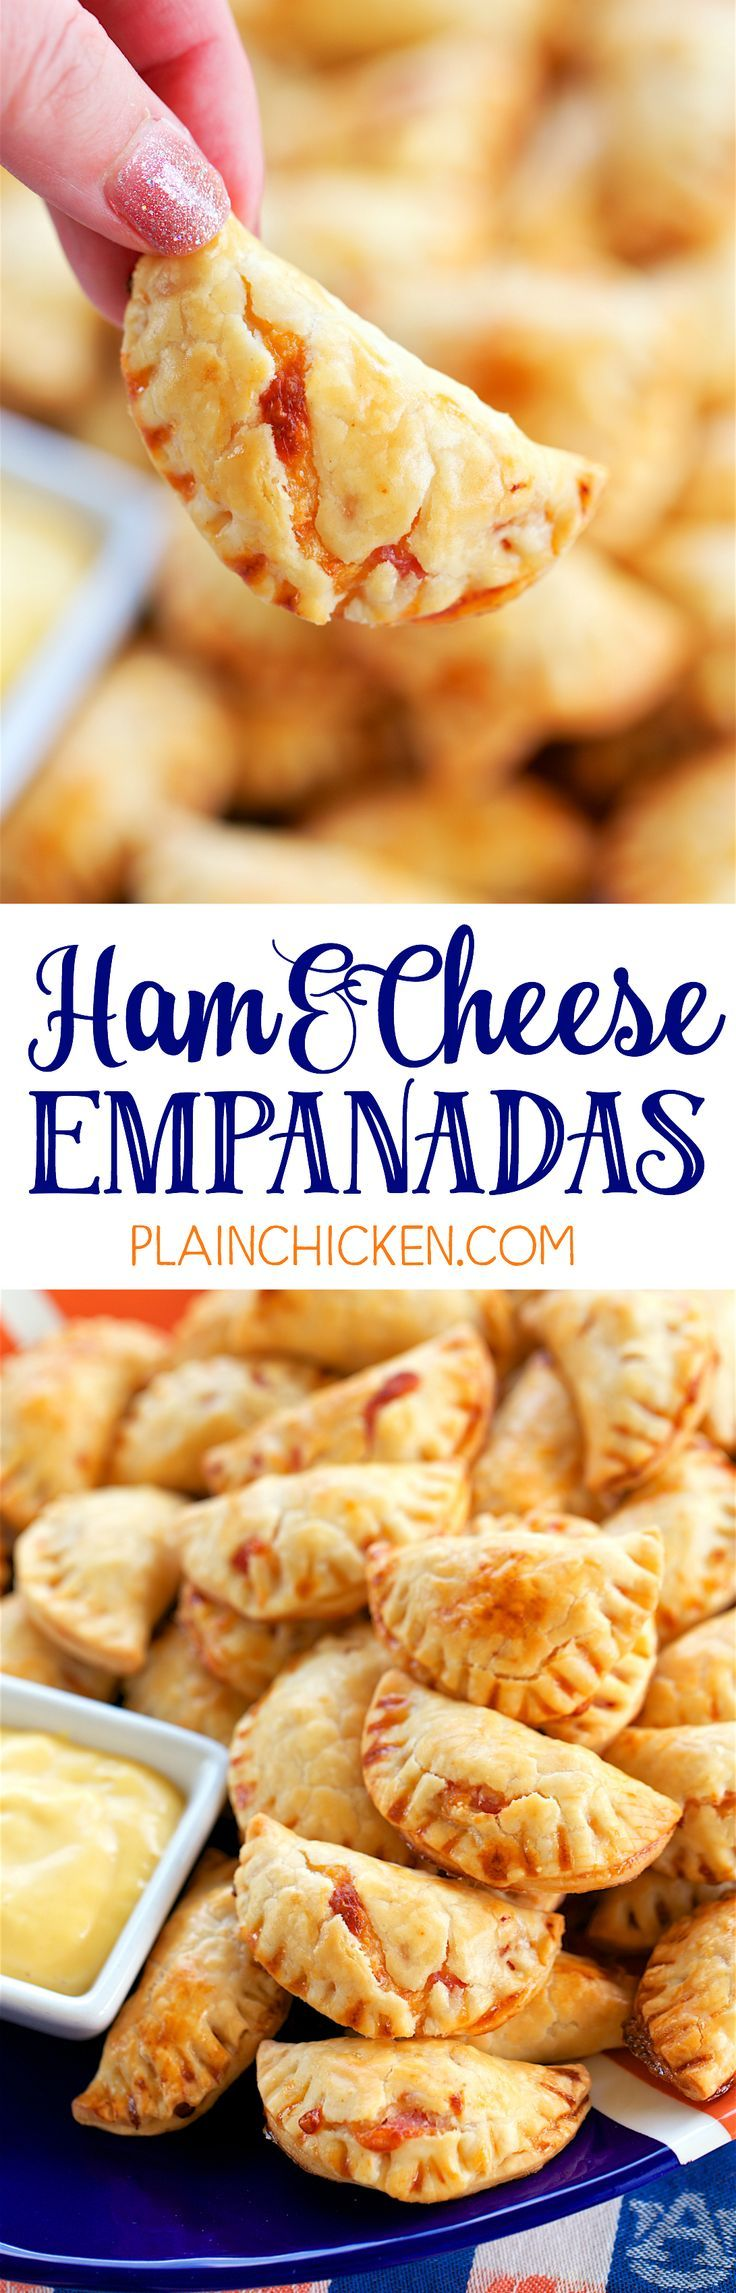 Ham and Cheese Empanadas - CRAZY good! Pie crust filled with a yummy ham and cheese filling and baked. Great for watching football and parties. Can make ahead of time and freezer for later.